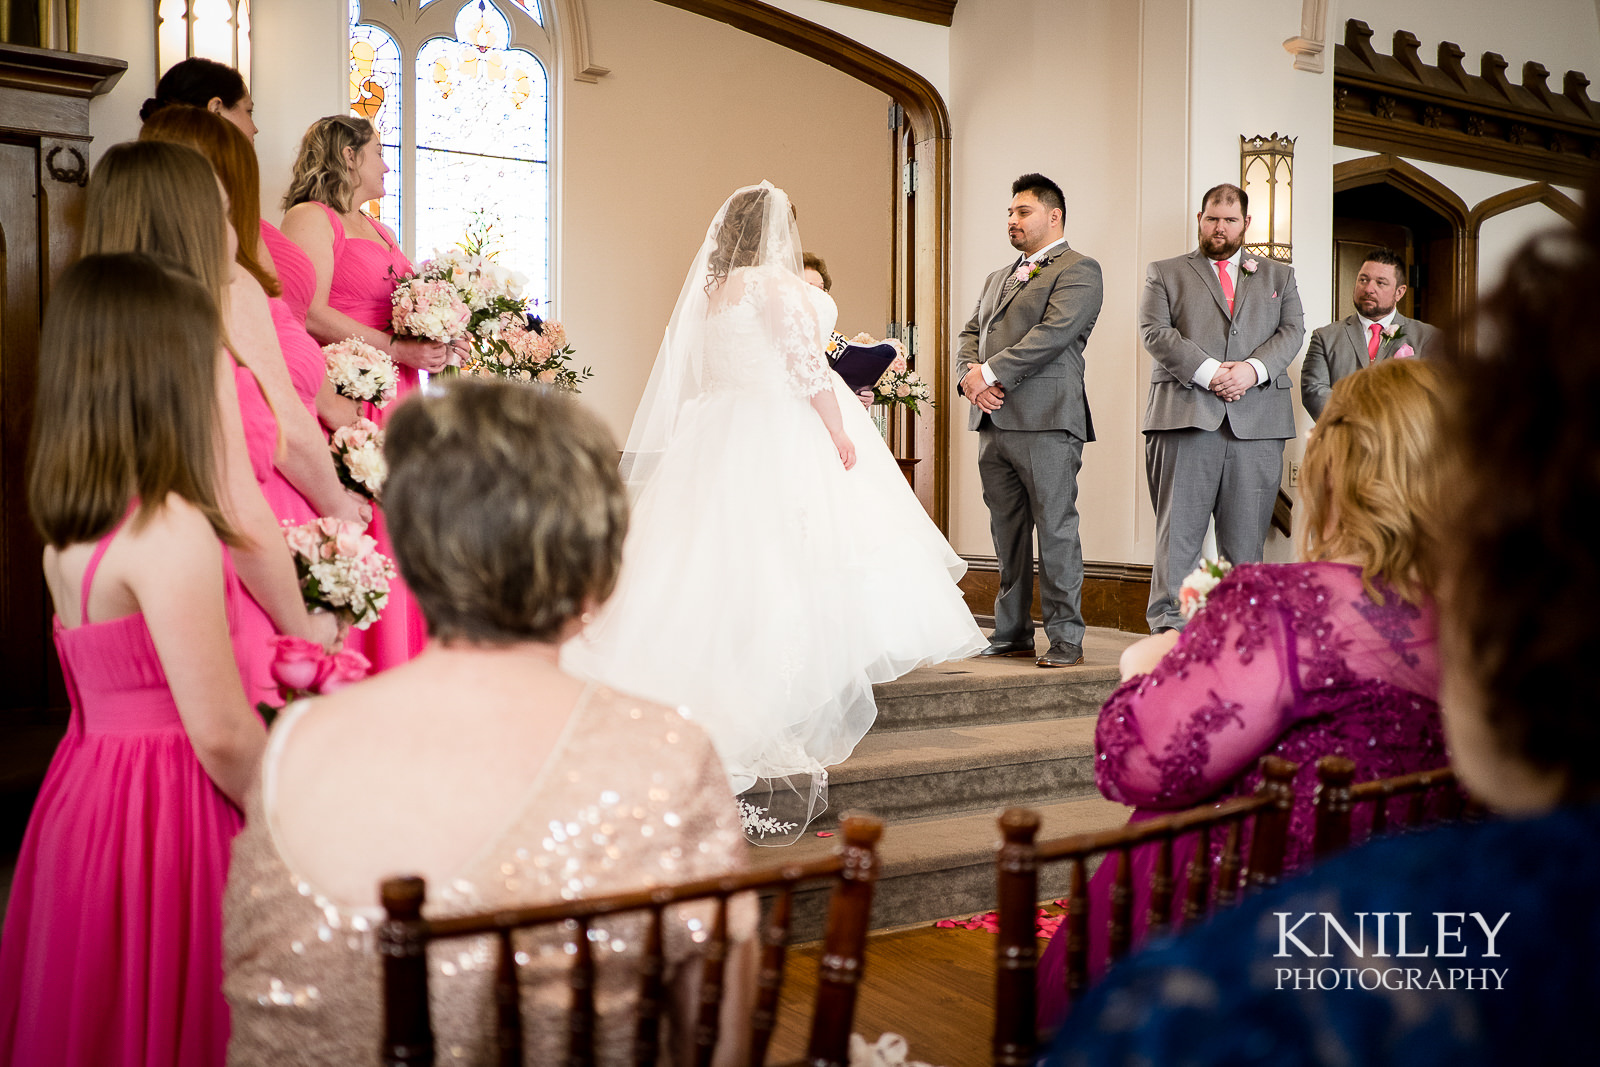 036 - Westminster Chapel - Rochester NY wedding photo - Kniley Photography.jpg